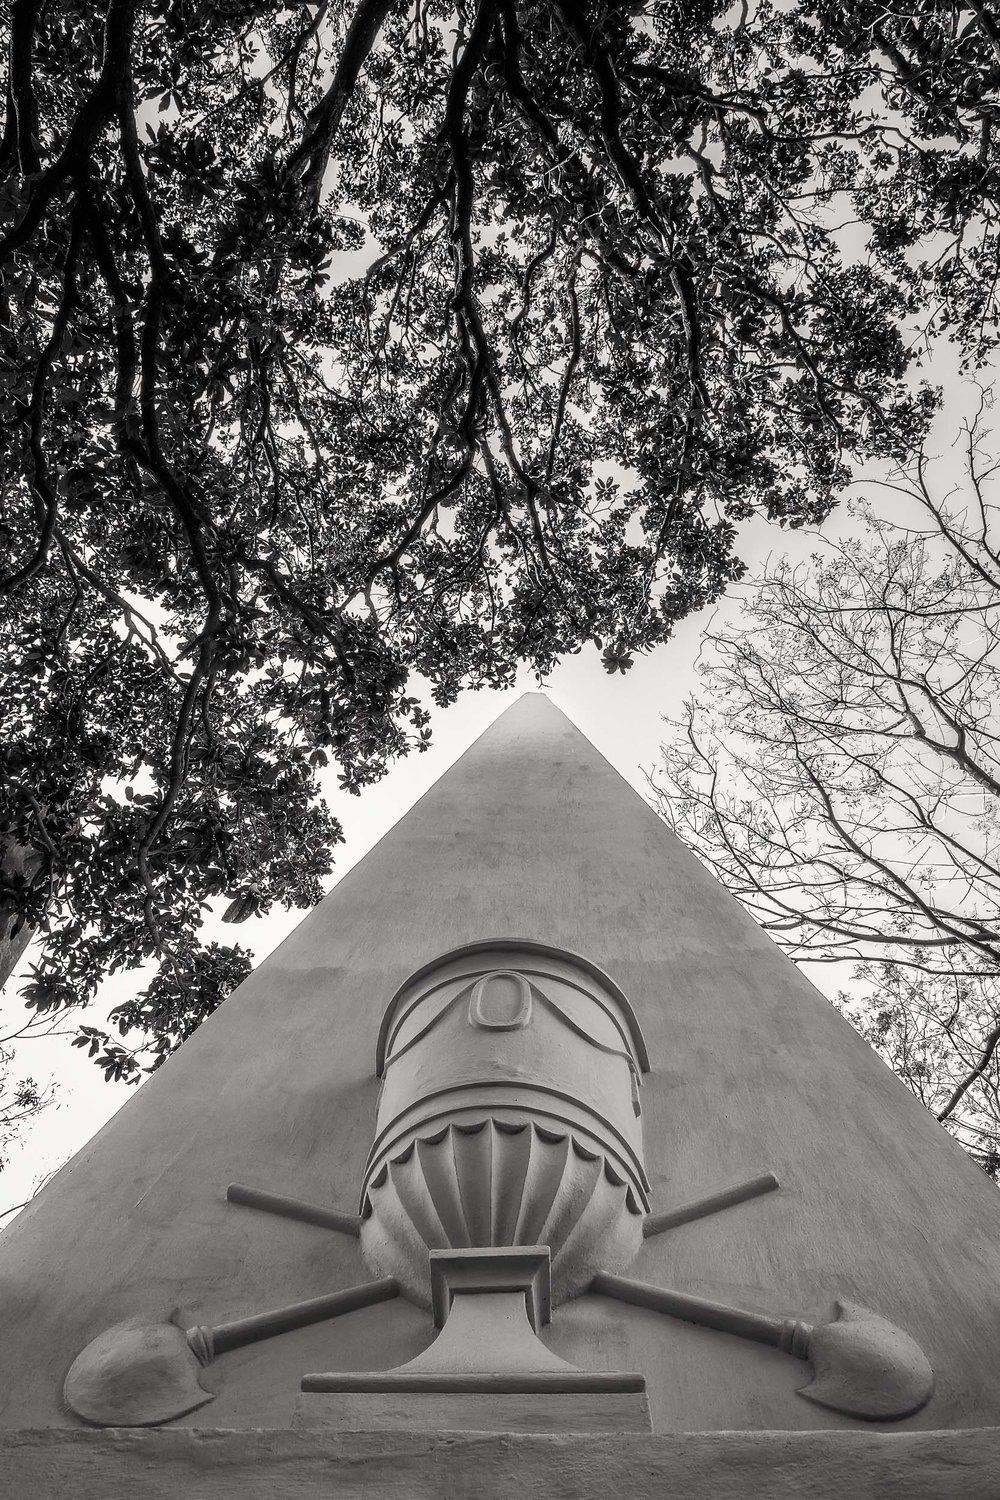 Upwards, South Park Street Cemetery, Kolkata, India